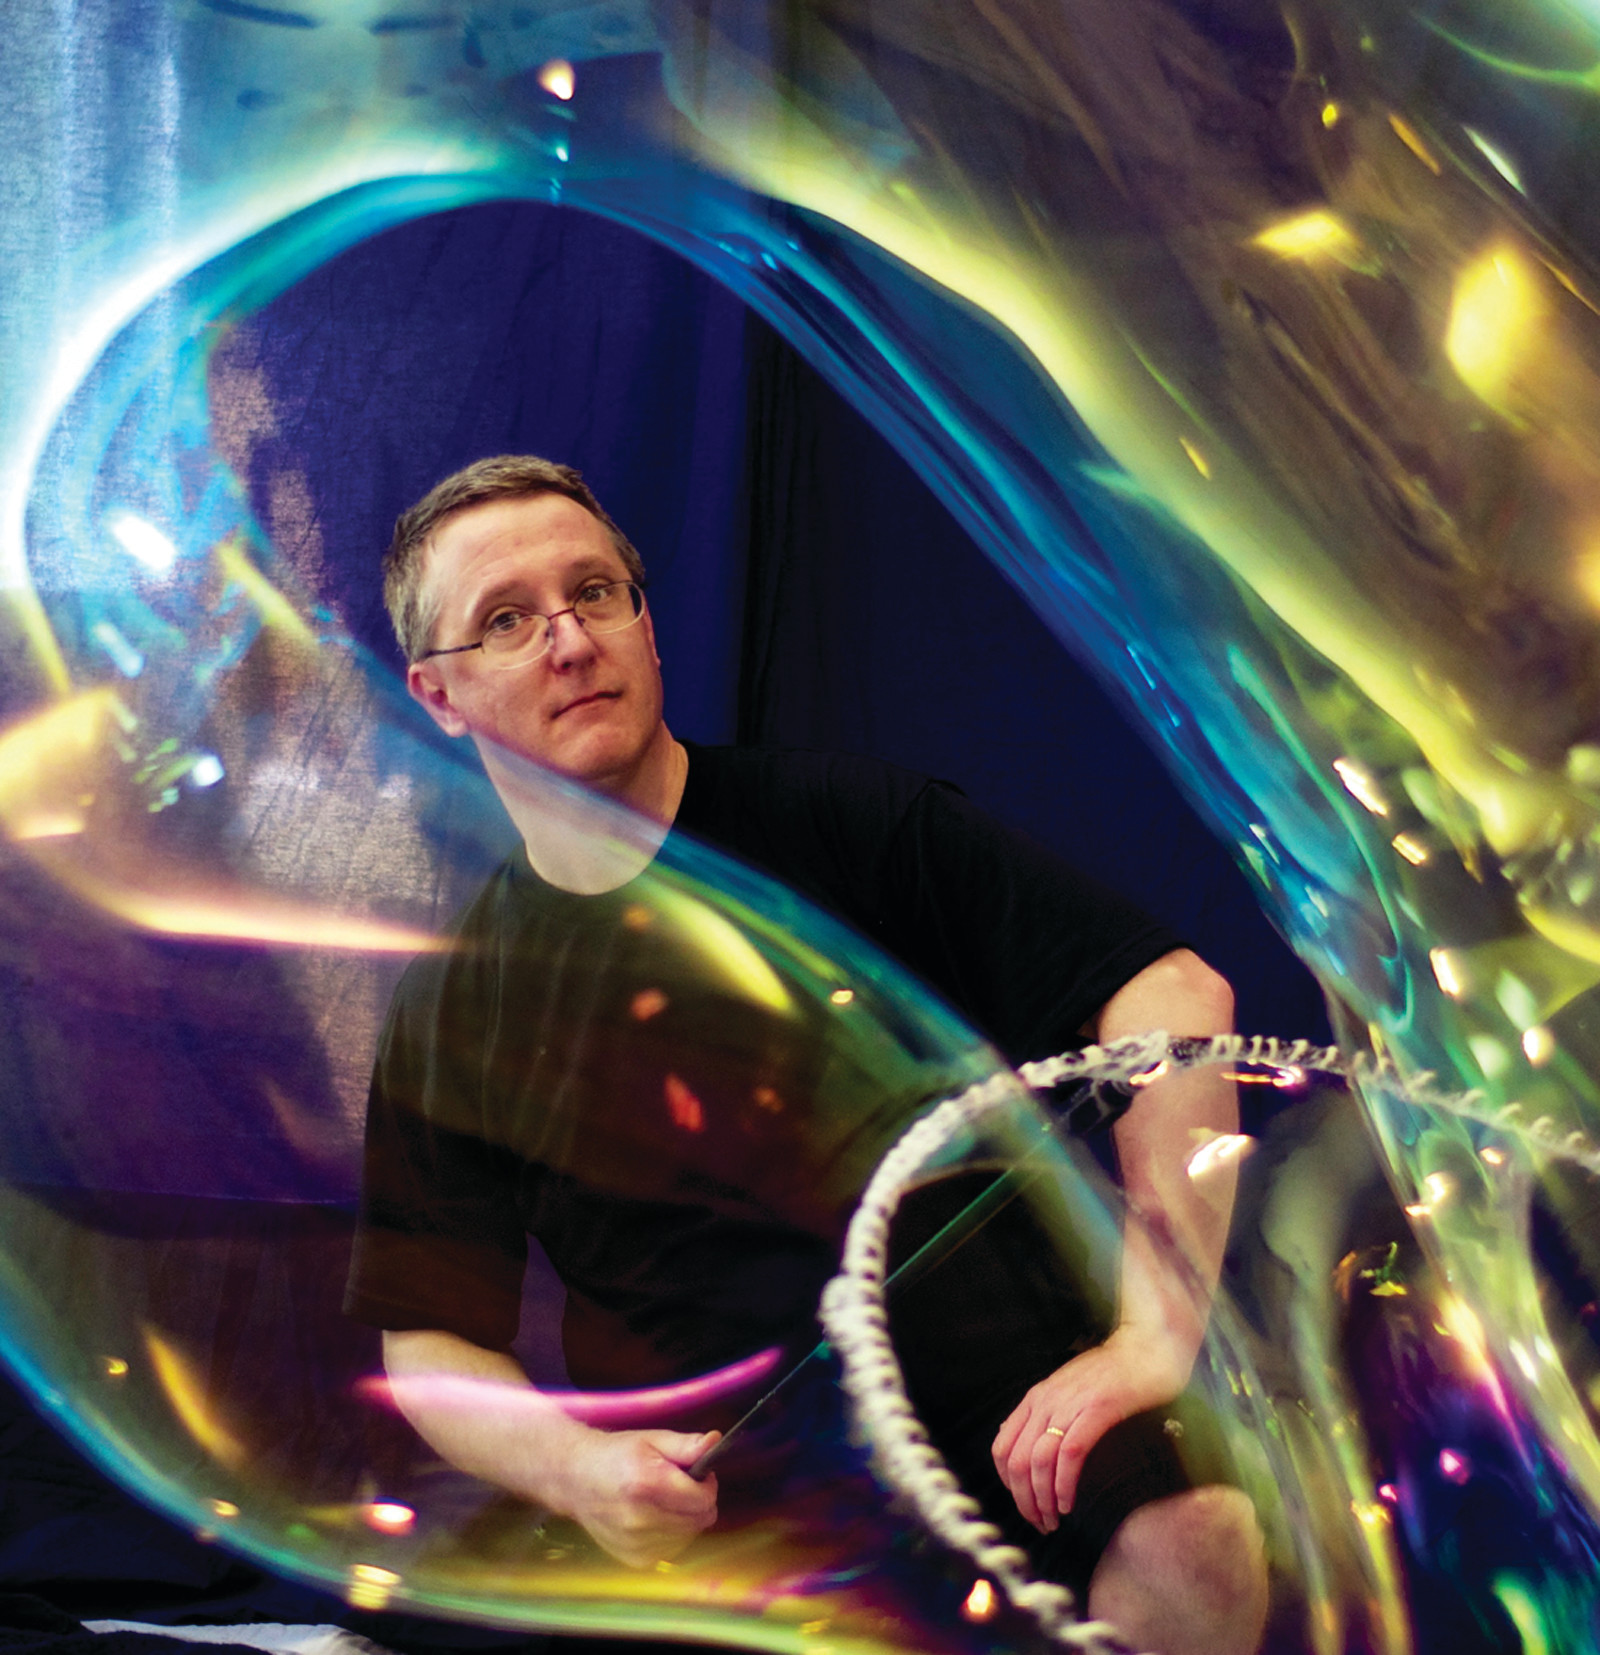 BUBBLE GUY: Keith Michael Johnson is surrounded by one of his bubble creations.